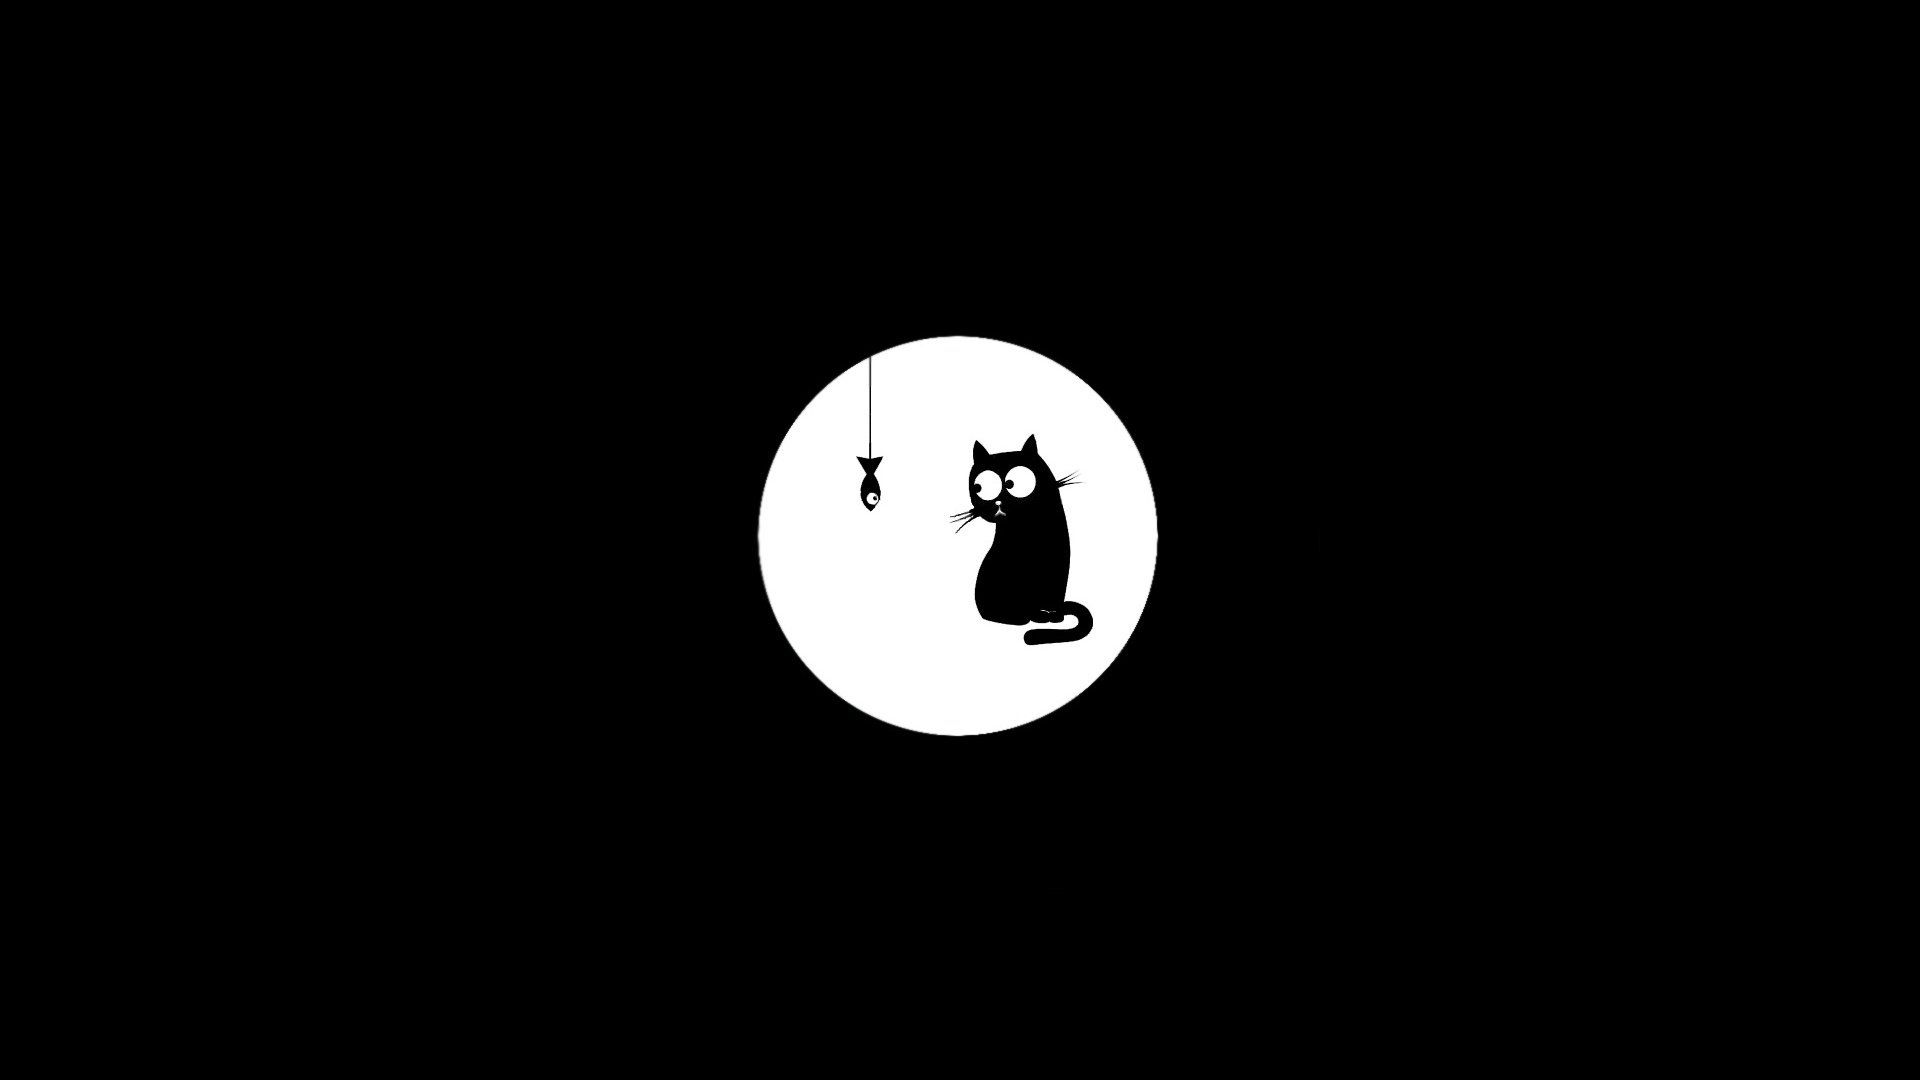 Black Cat Wallpaper Android Apps On Google Play Cat Wallpaper Hd Wallpaper Black Cat